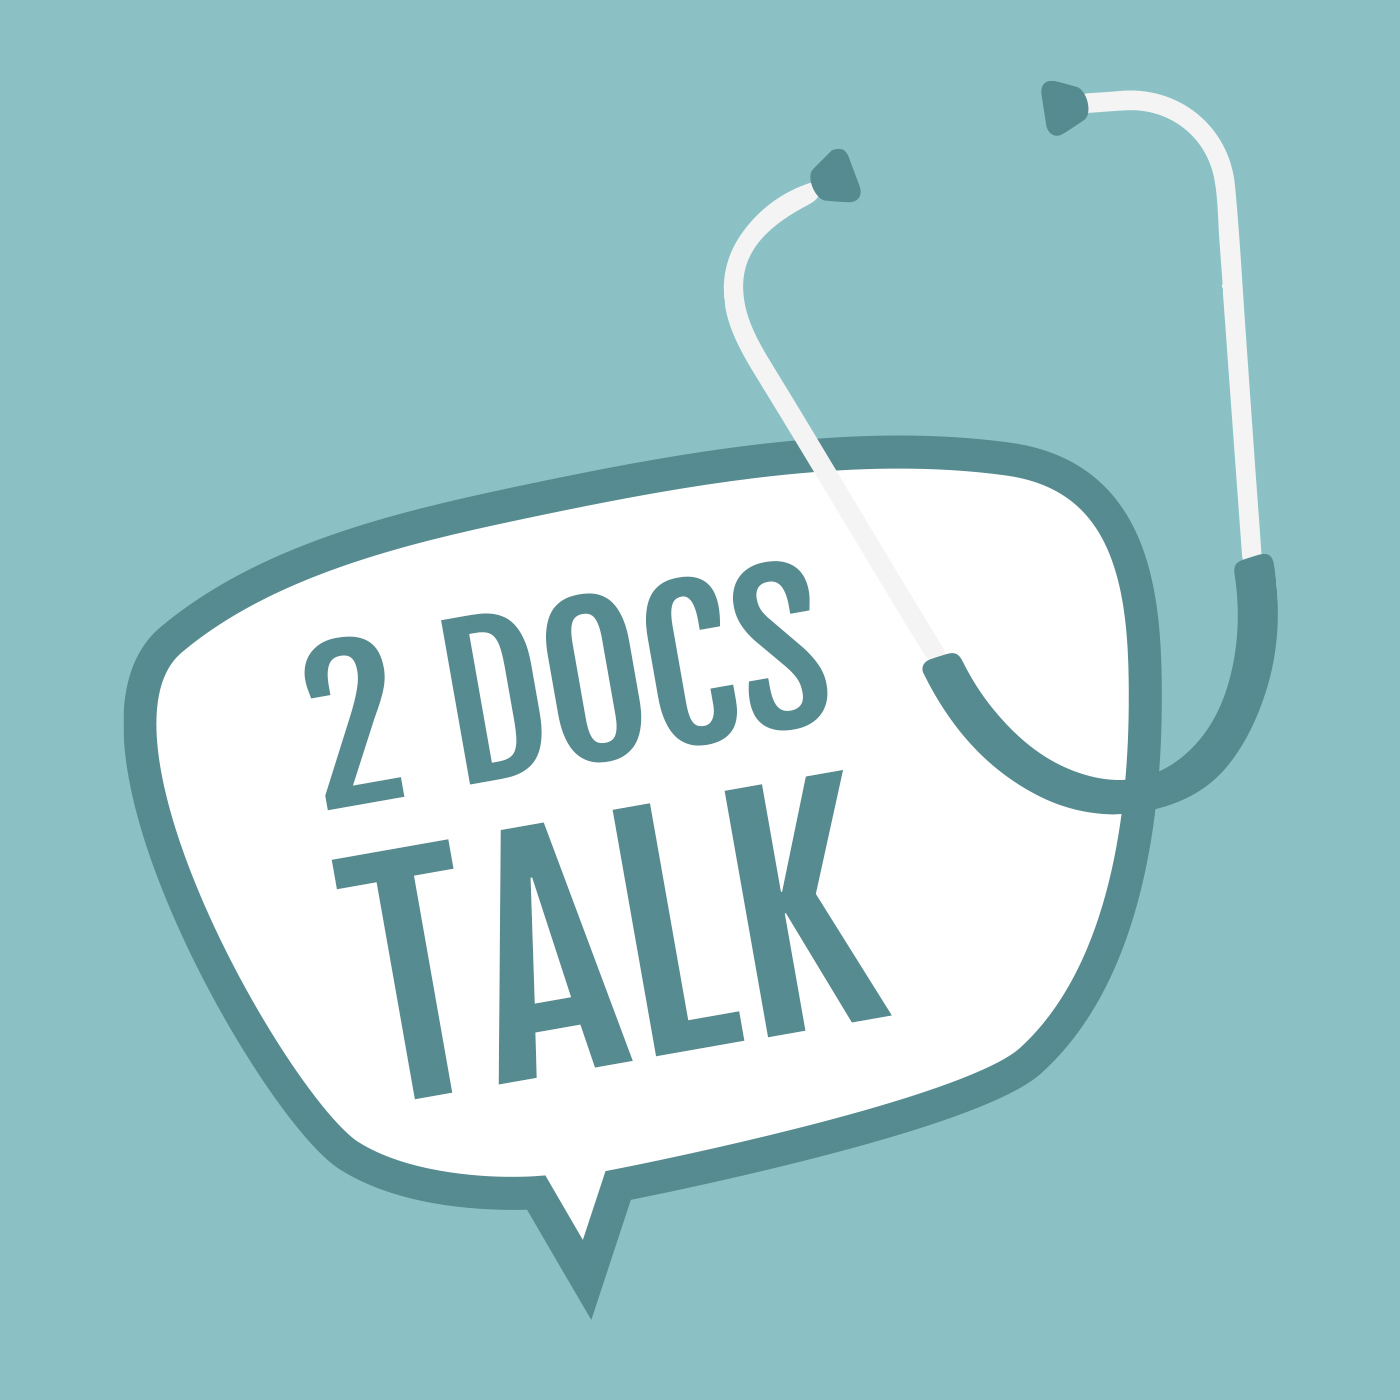 57785b684475 2 Docs Talk  The podcast about healthcare